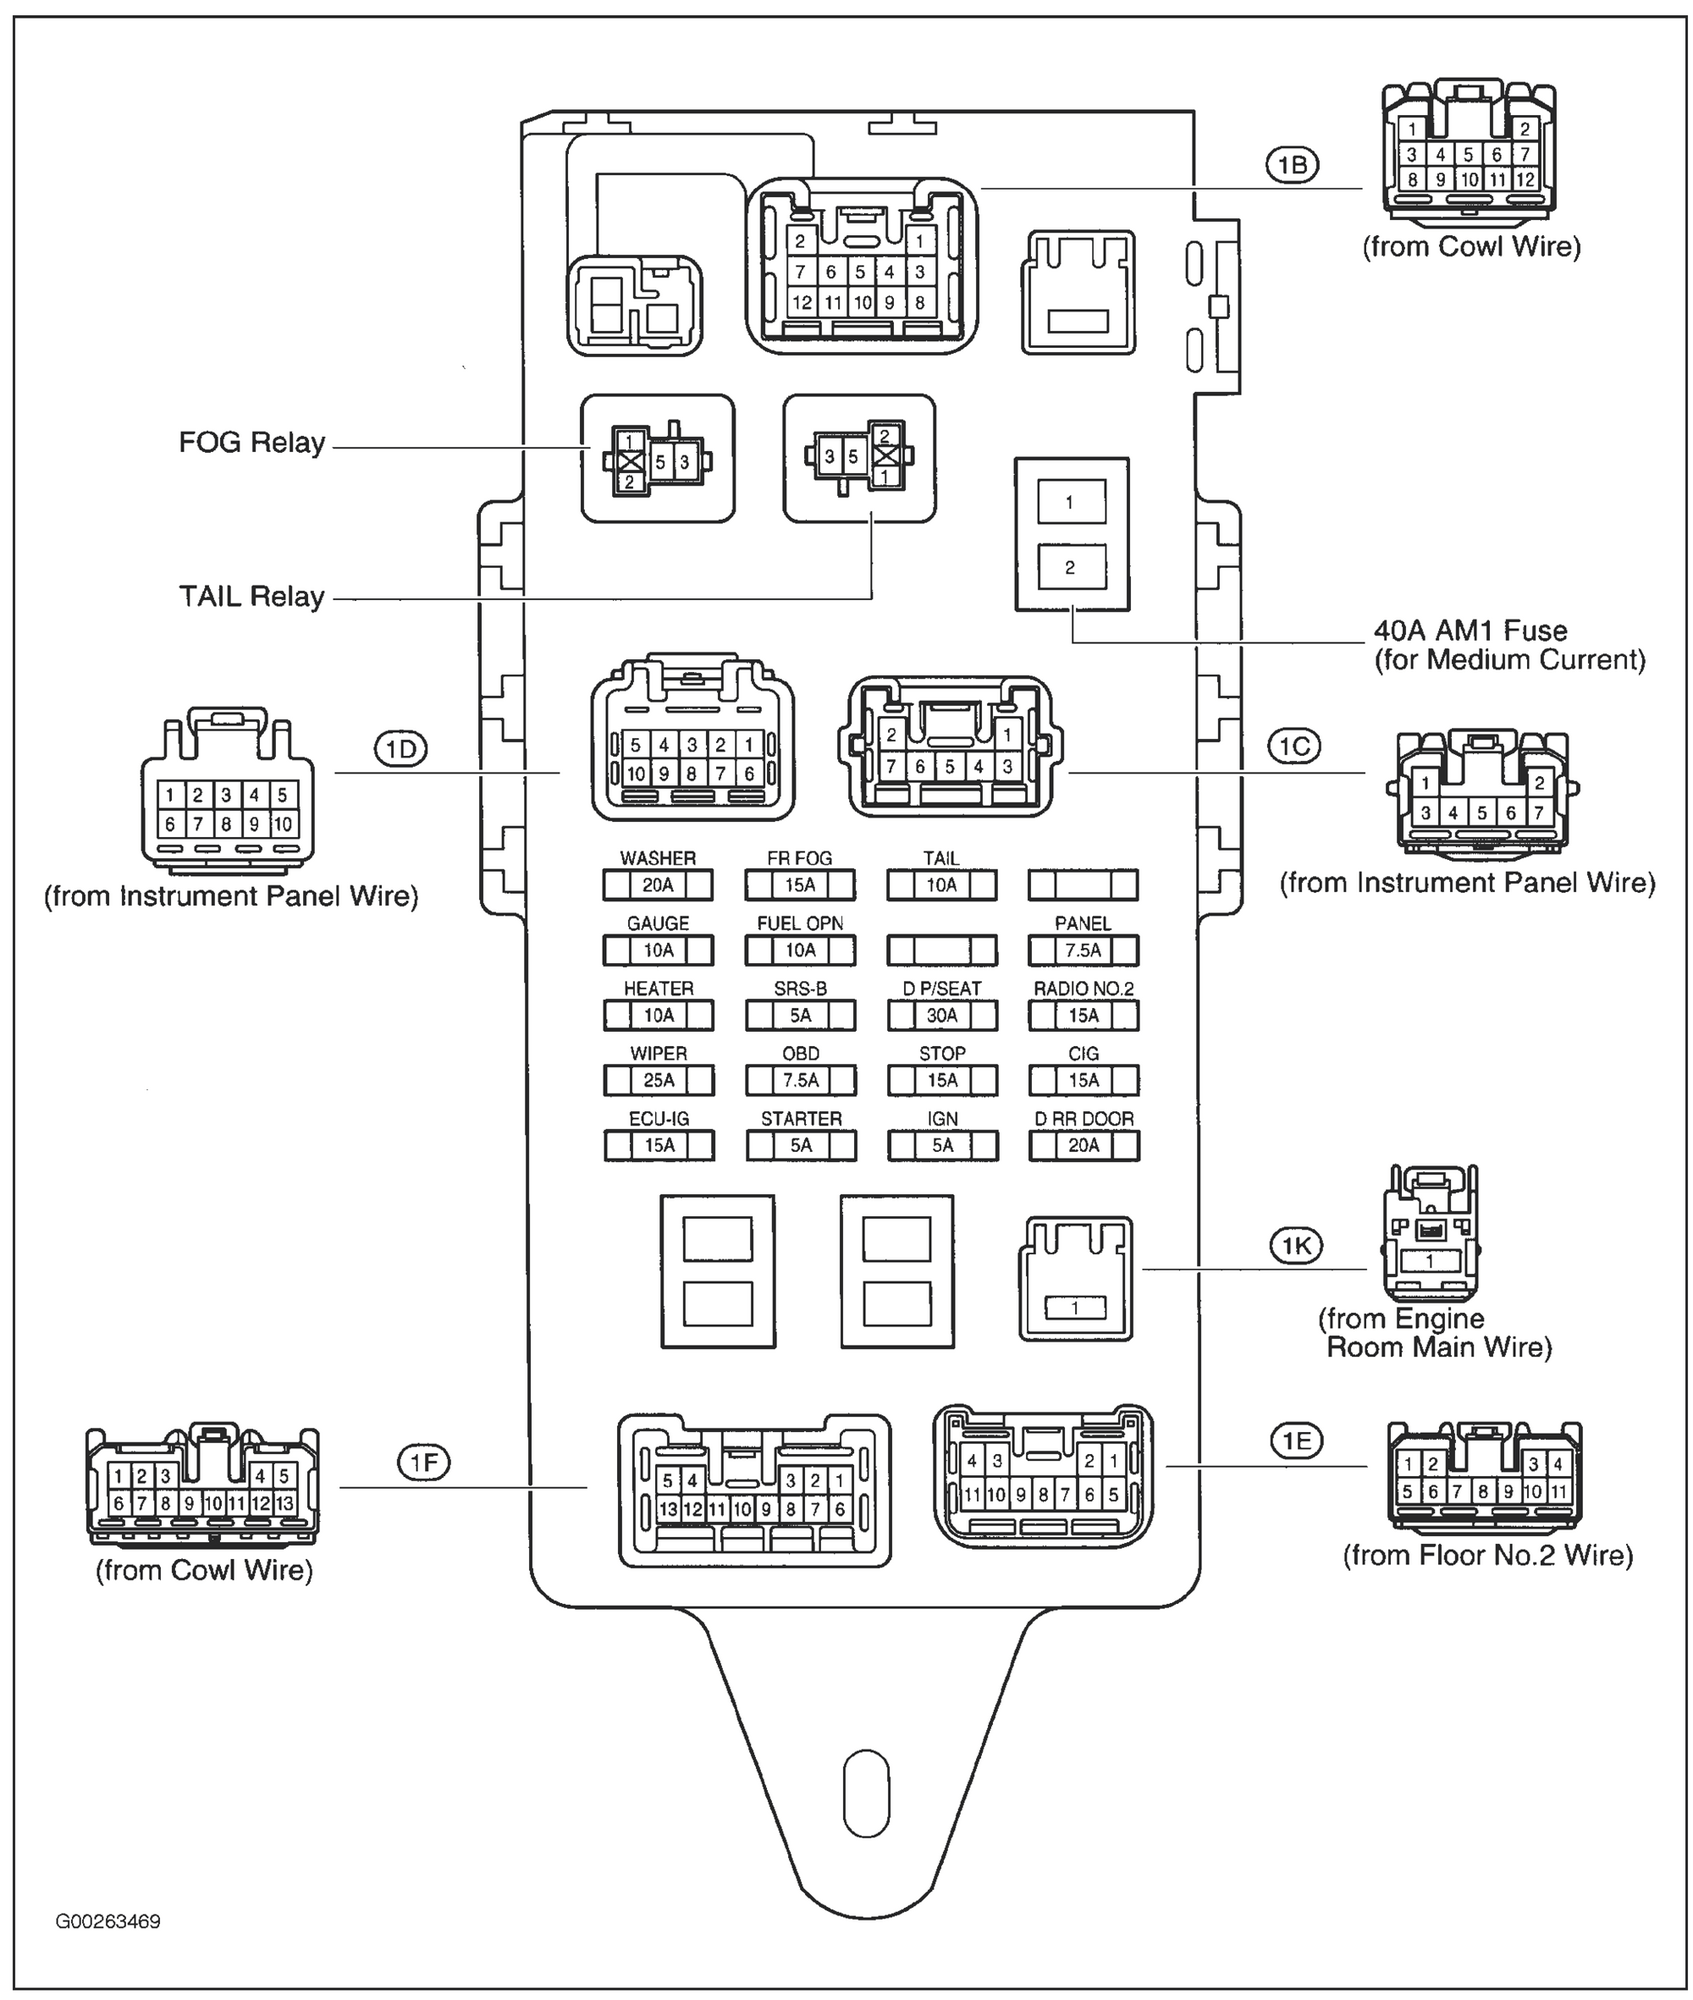 hight resolution of lexus rx400h fuse box layout wiring diagram show fuse box on lexus rx400h wiring diagram article